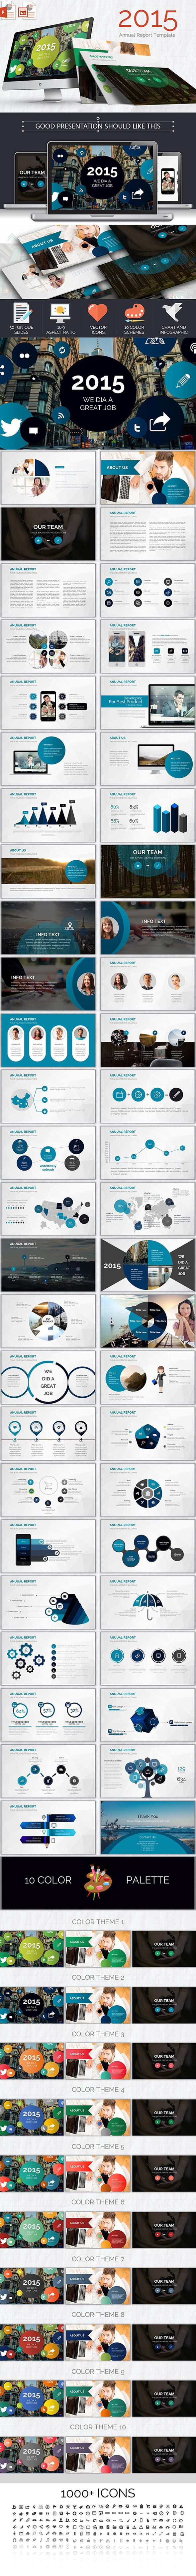 33 best powerpoint design images on Pinterest | Powerpoint ...